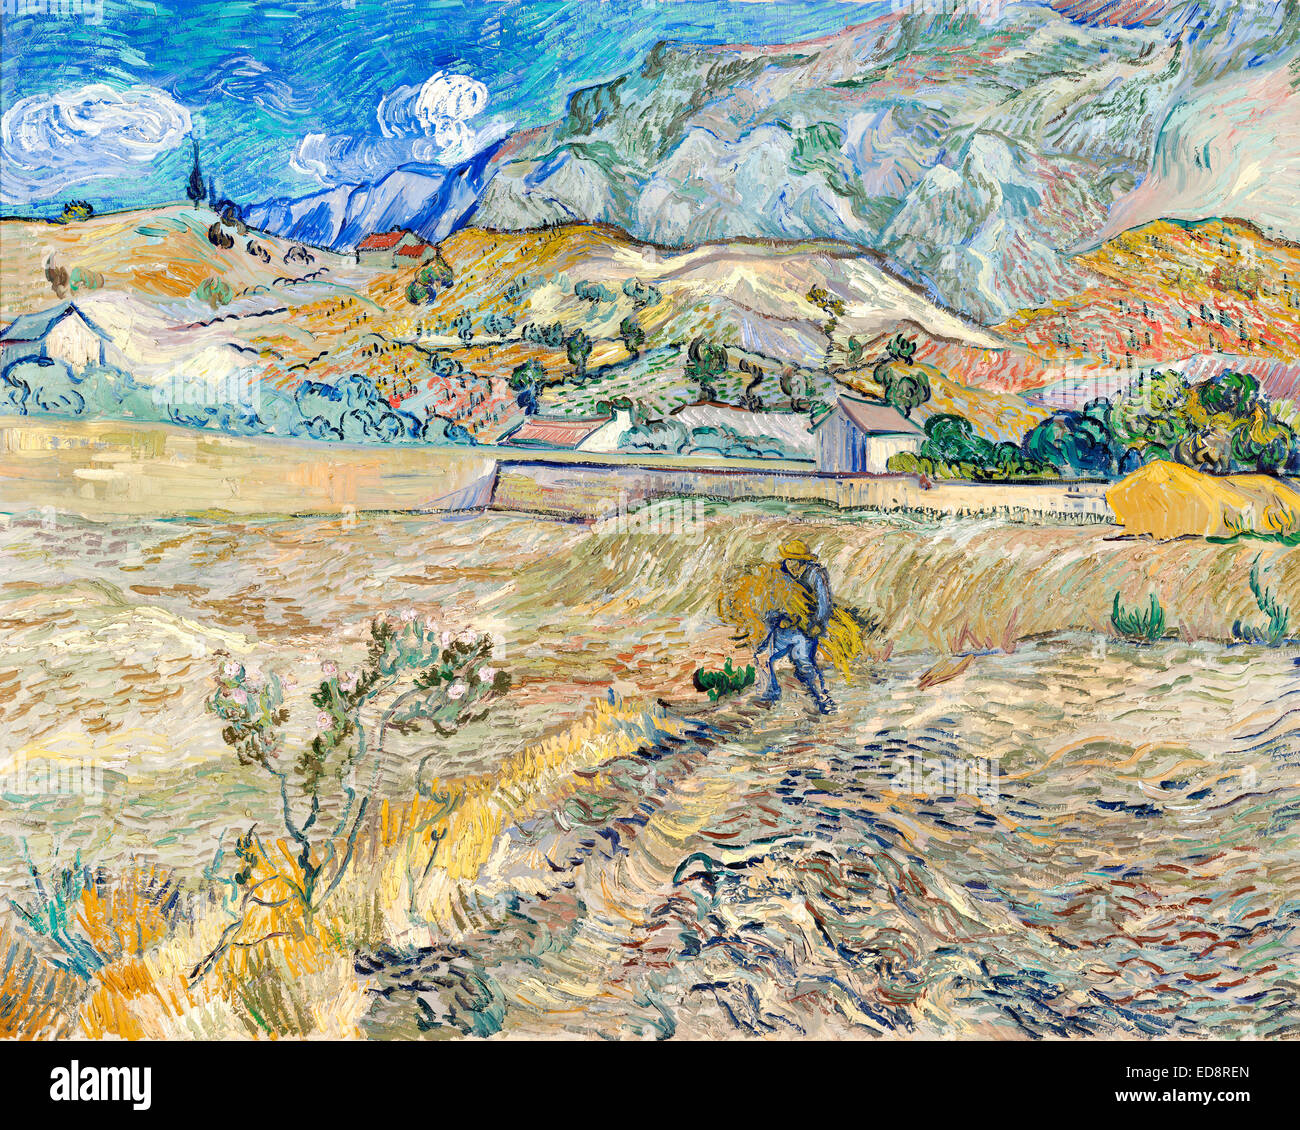 Vincent van Gogh, Enclosed Wheat Field with Peasant (Landscape at Saint-Remy) 1889 Oil on canvas. Indianapolis Museum - Stock Image